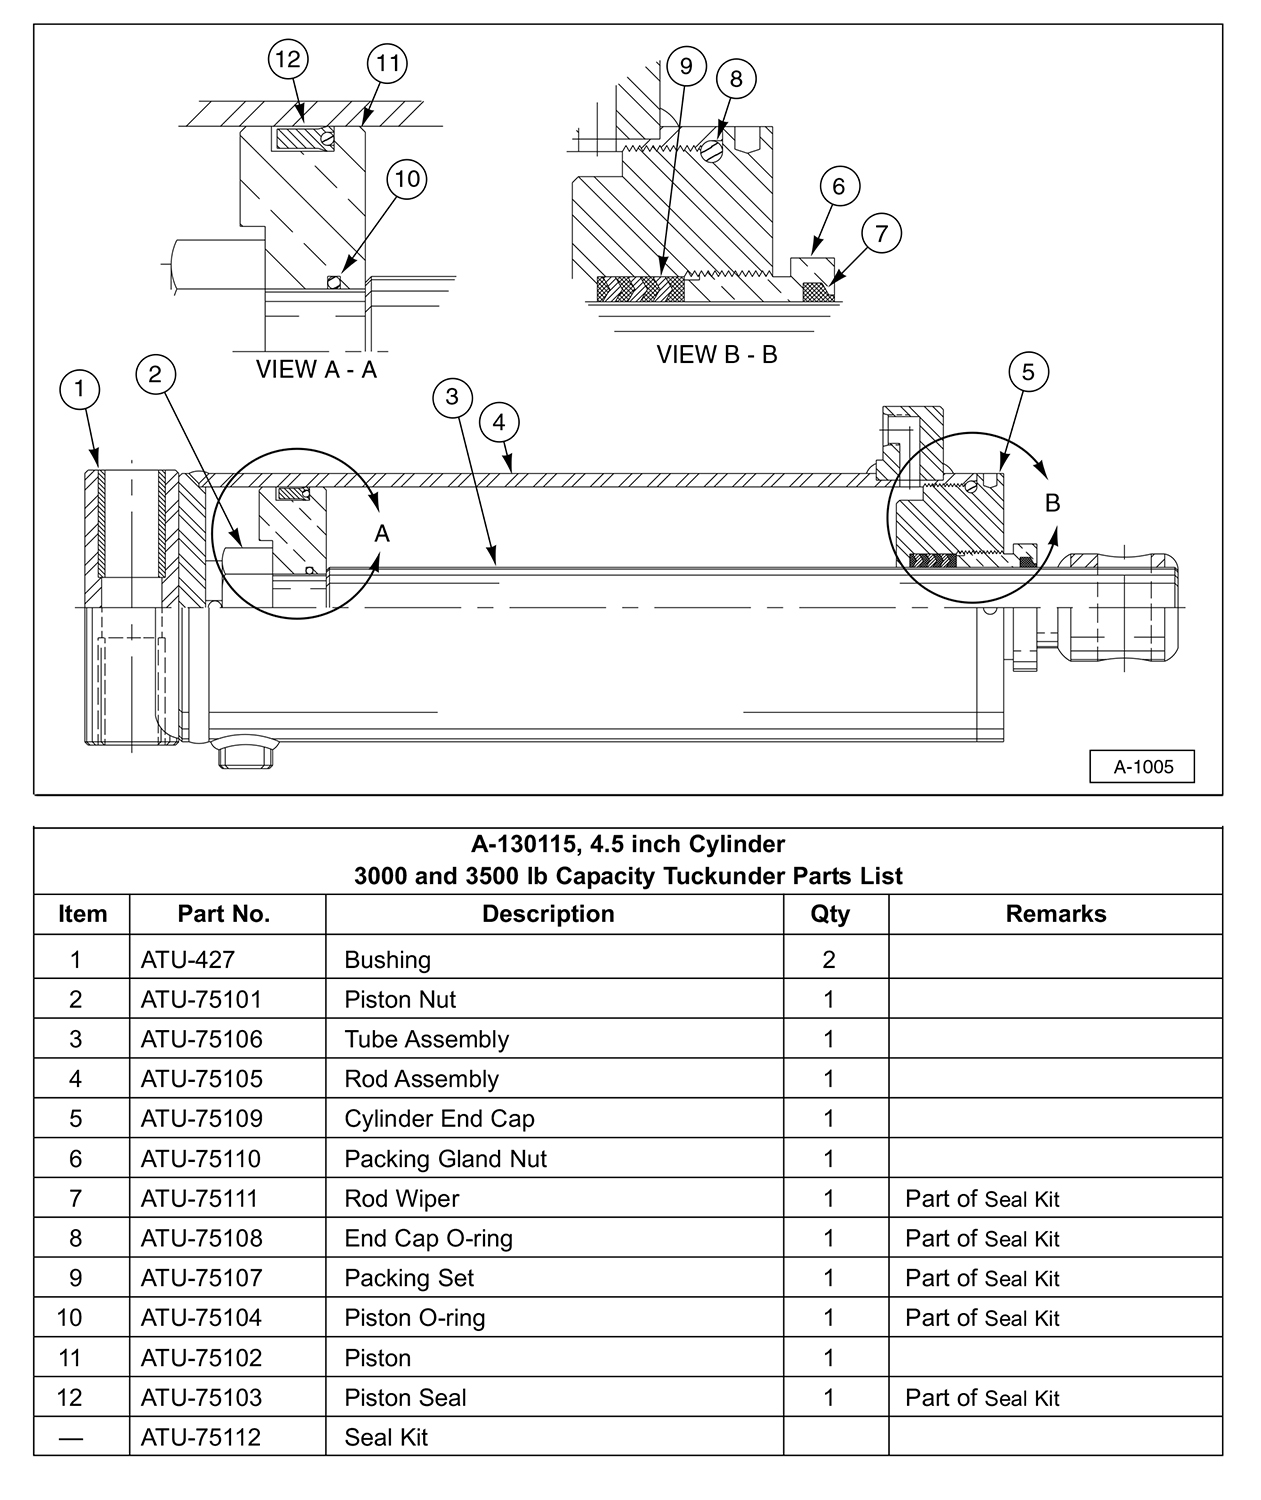 SM Hydraulic Cylinder Service Parts Diagram (For 3000 and 3500 lb Capacity Liftgates)